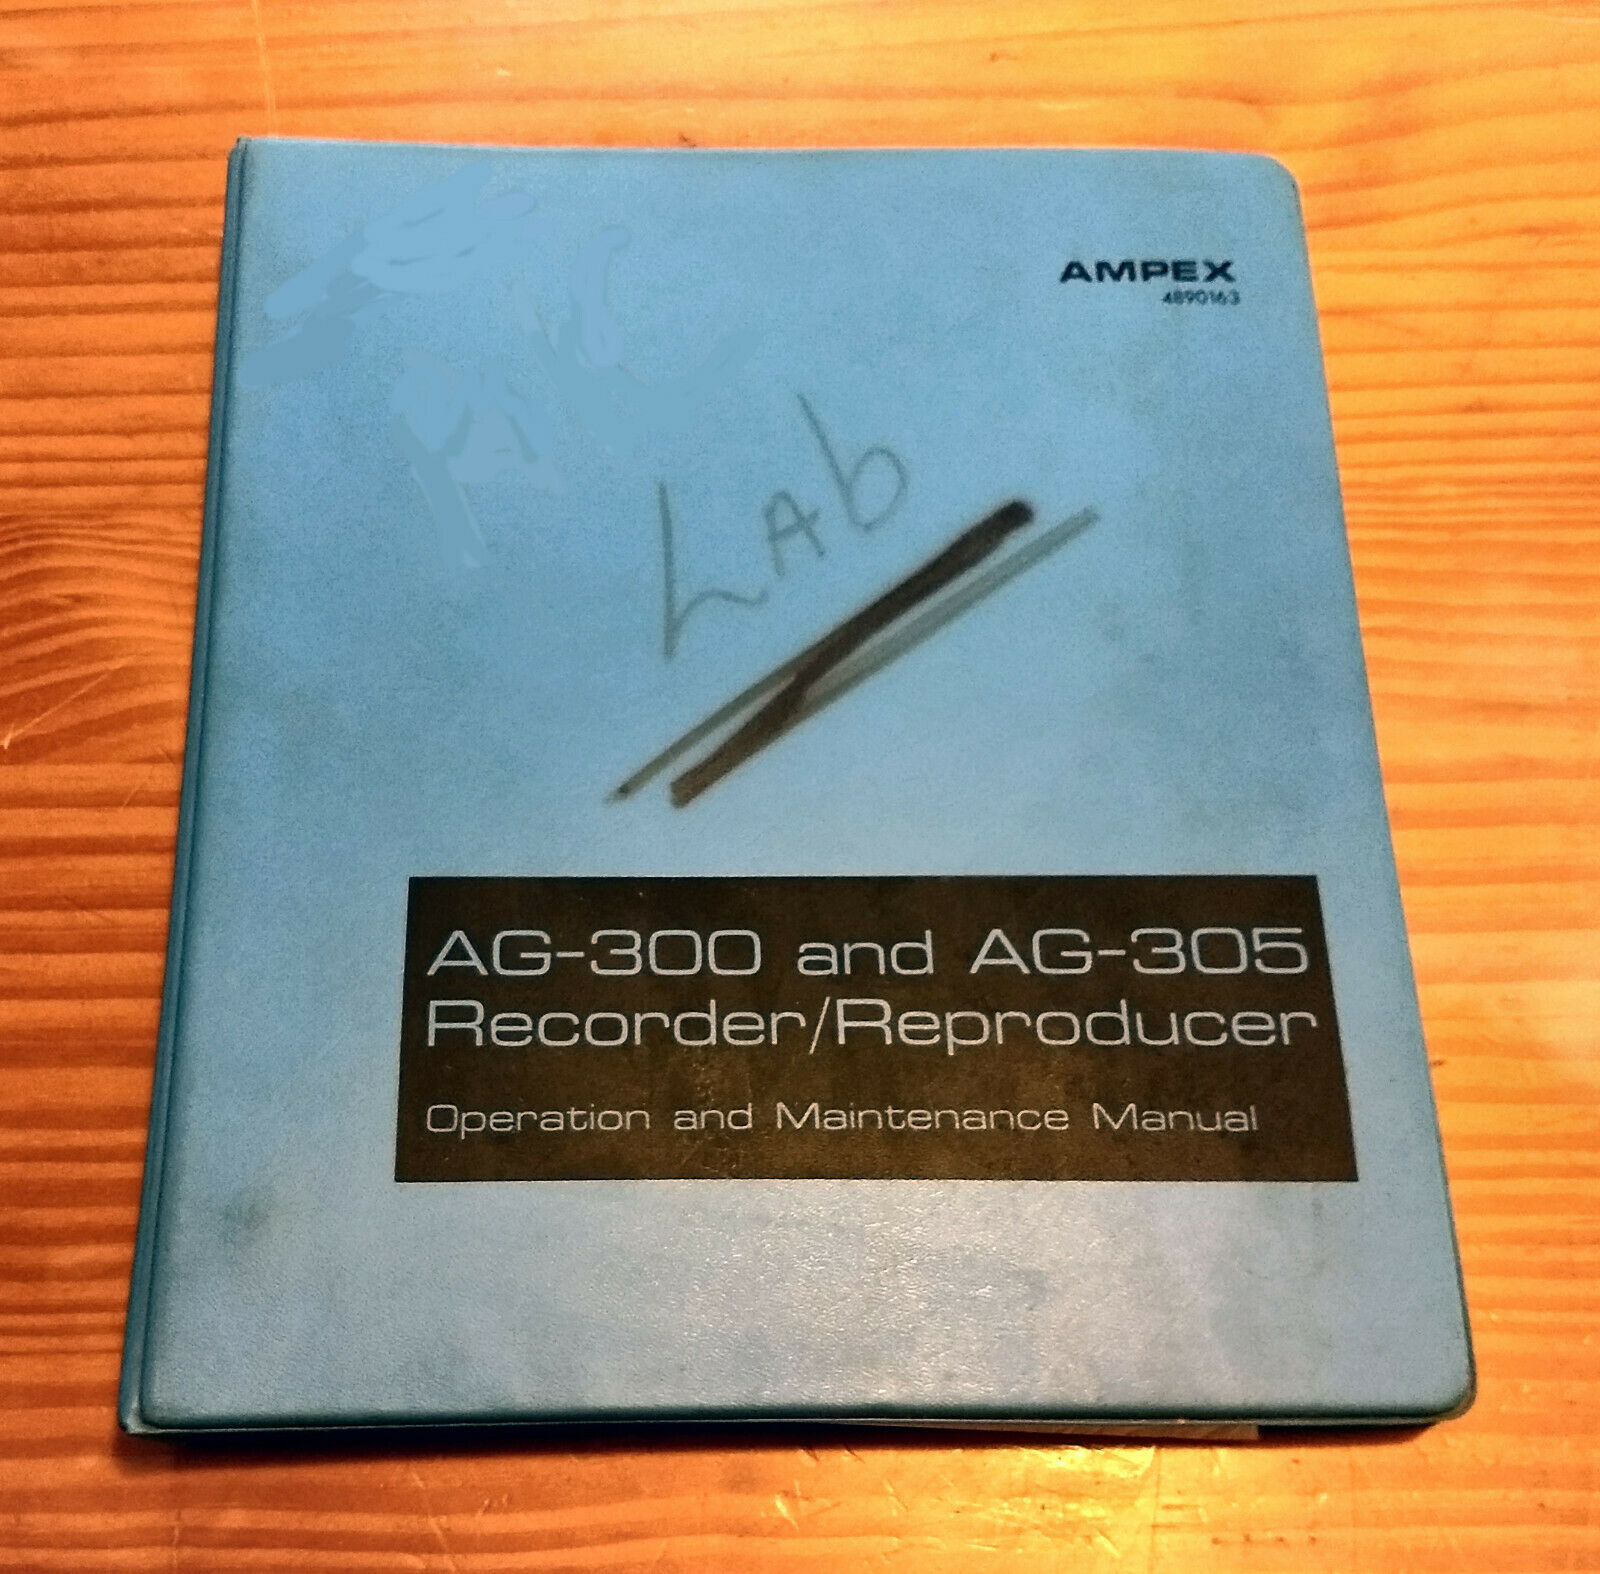 AMPEX AG-300 & AG-305 Tape Recorder Operation and Maintenance Manual